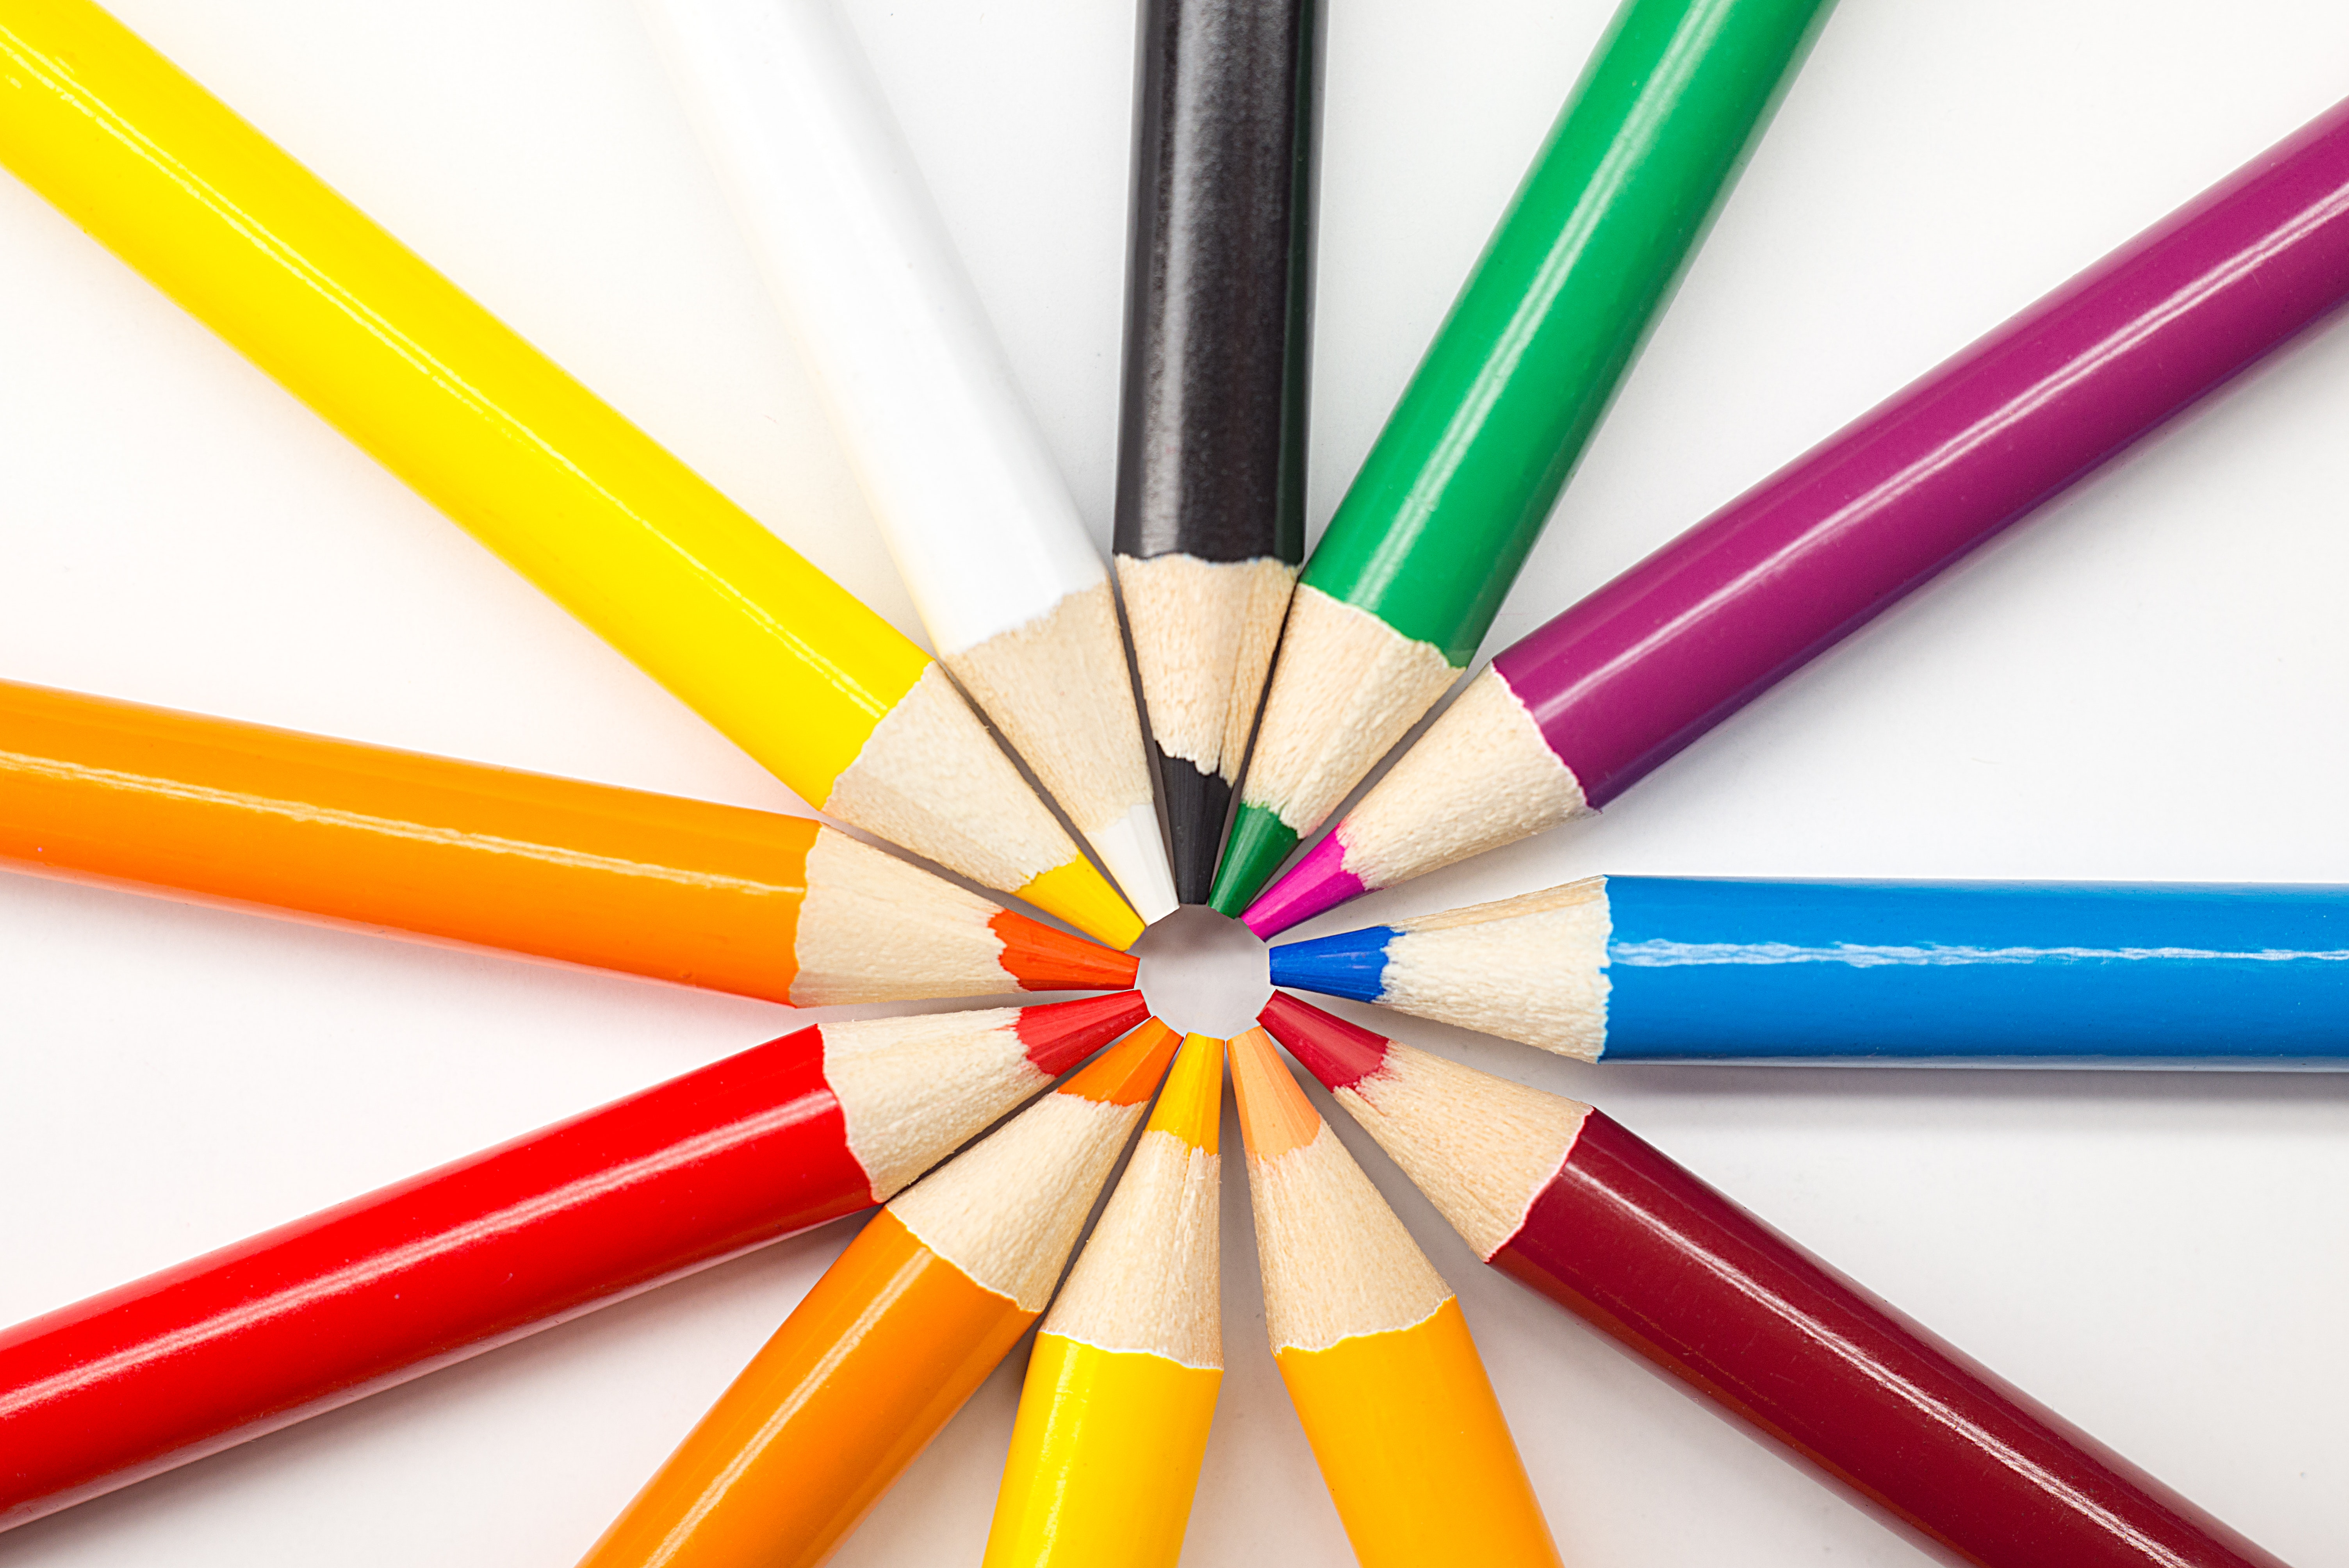 assorted-colored-pencils-967382